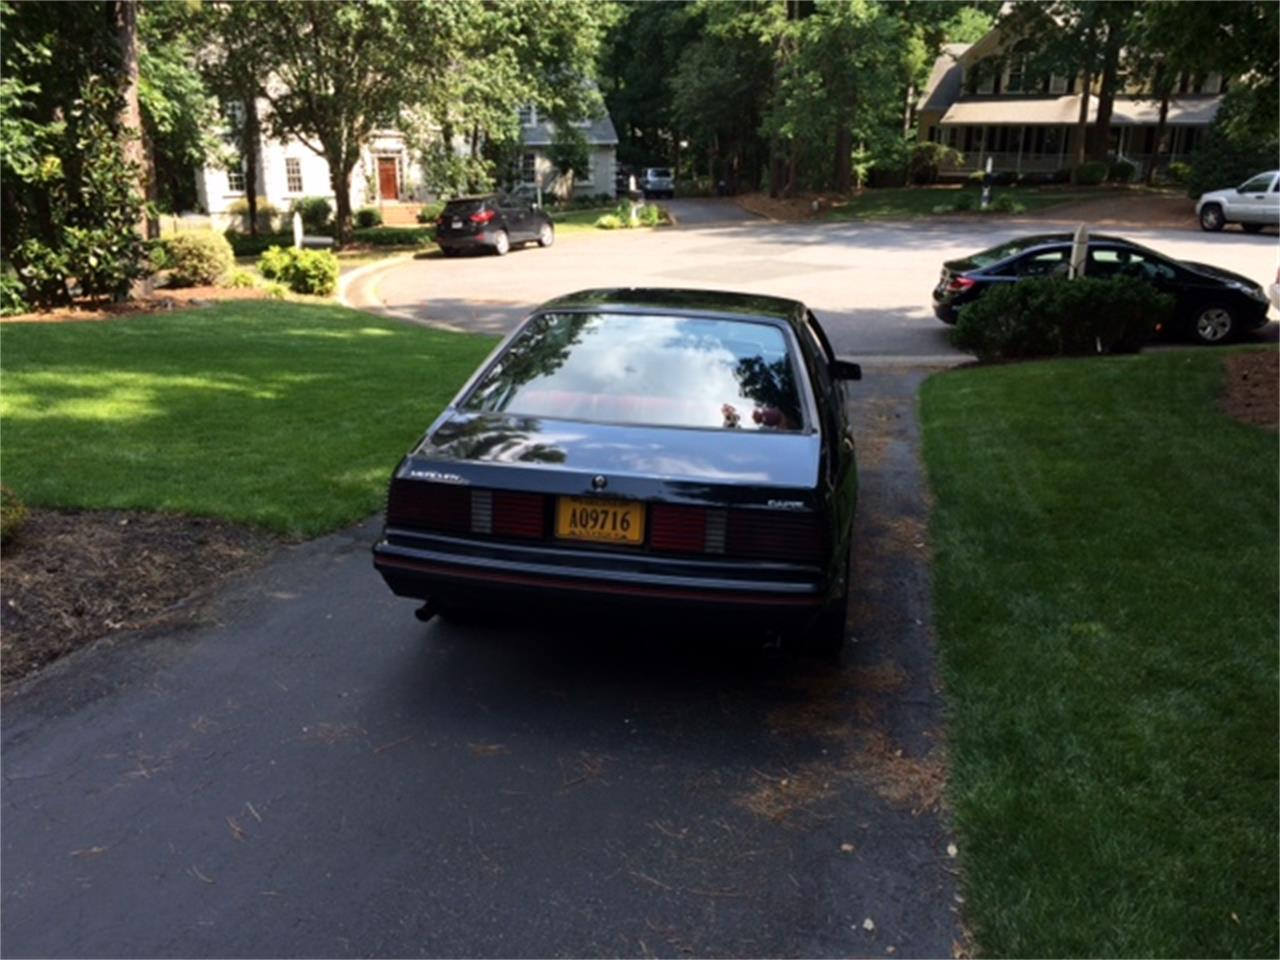 Large Picture of 1979 Capri located in Virginia - $12,000.00 Offered by a Private Seller - O6WJ